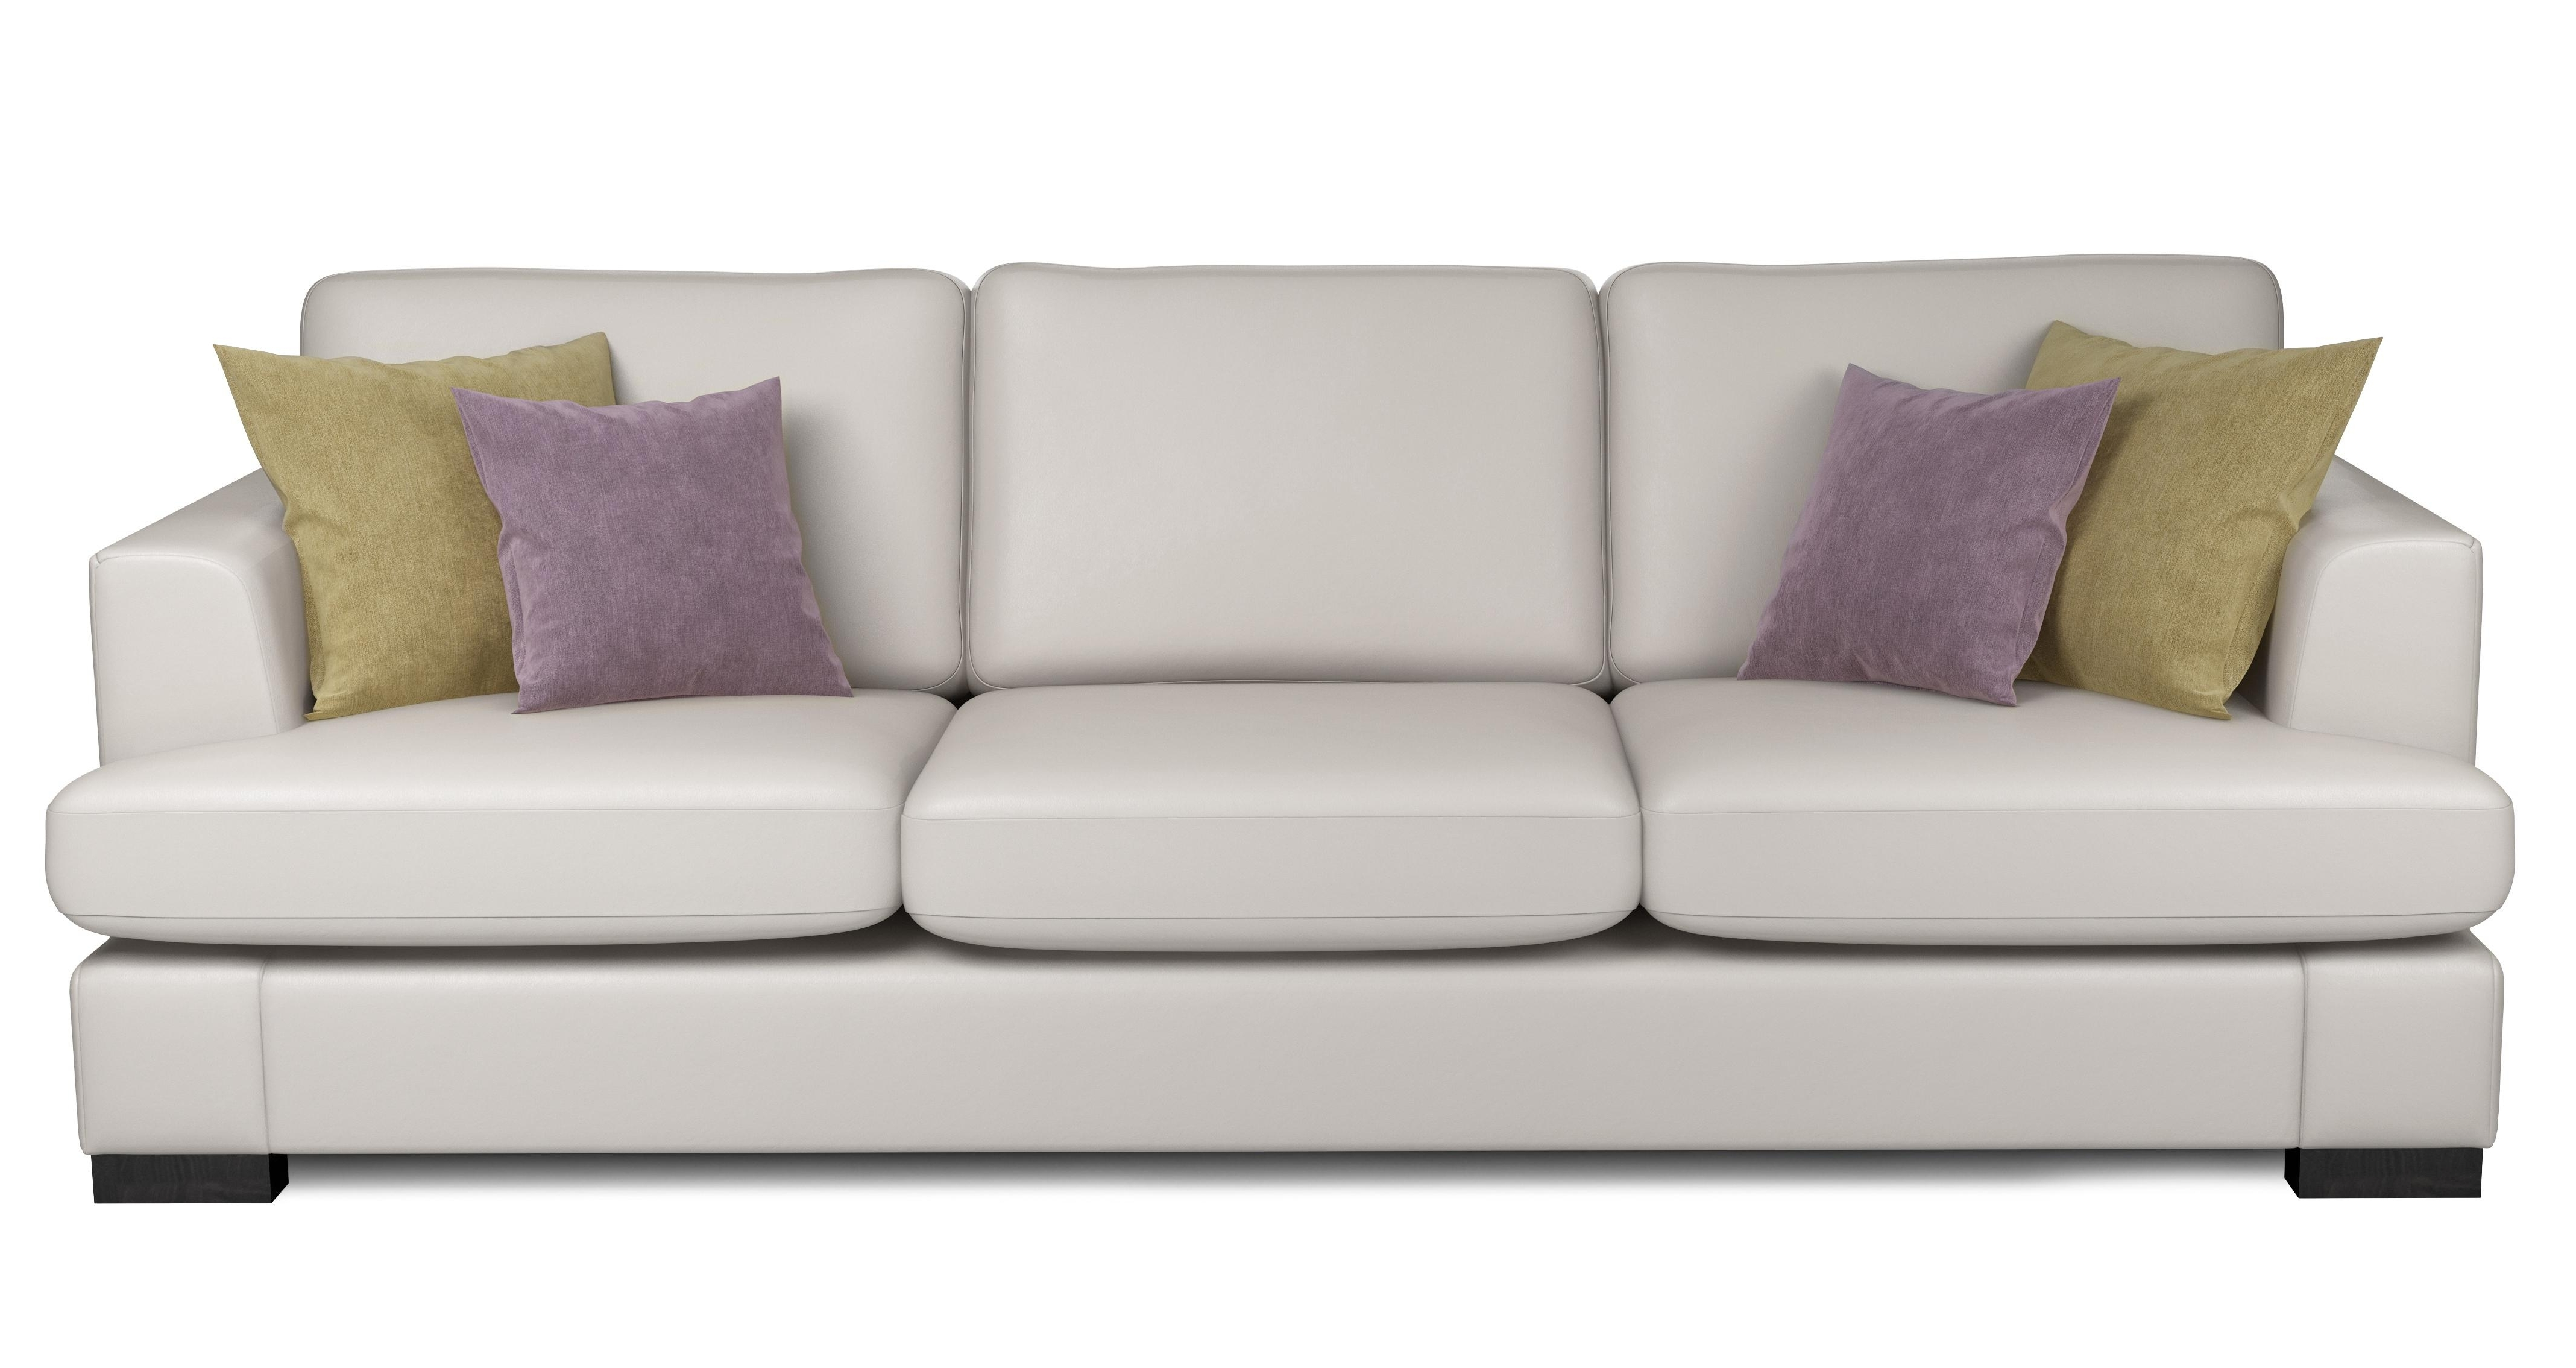 Widely Used 4 Seater Sofas Pertaining To 4 Seater Leather Sofa – Home And Textiles (View 20 of 20)